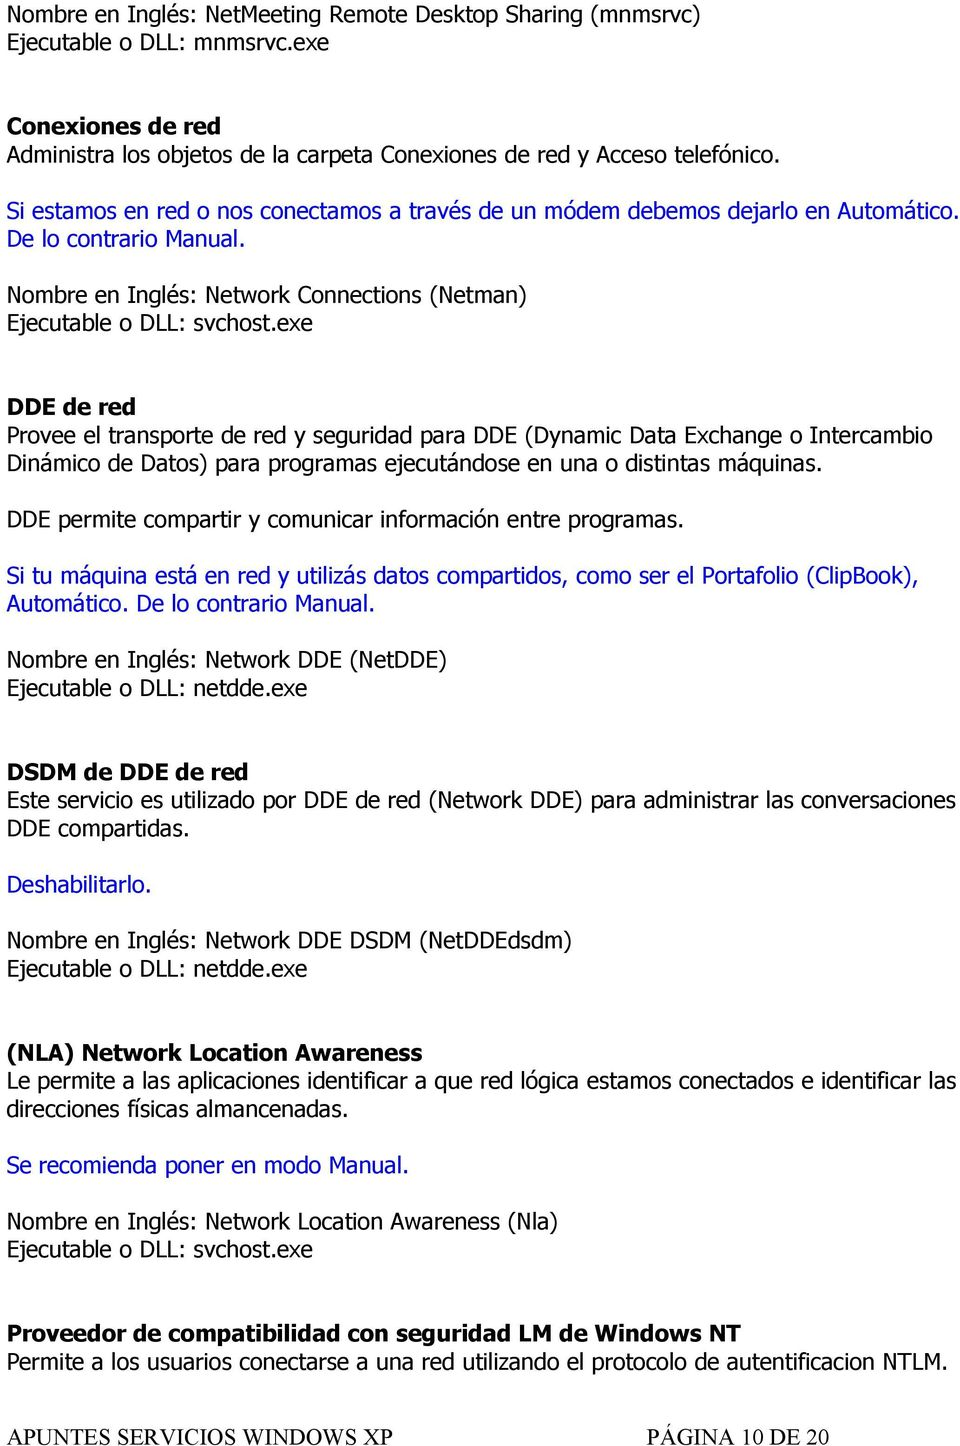 Nombre en Inglés: Network Connections (Netman) DDE de red Provee el transporte de red y seguridad para DDE (Dynamic Data Exchange o Intercambio Dinámico de Datos) para programas ejecutándose en una o